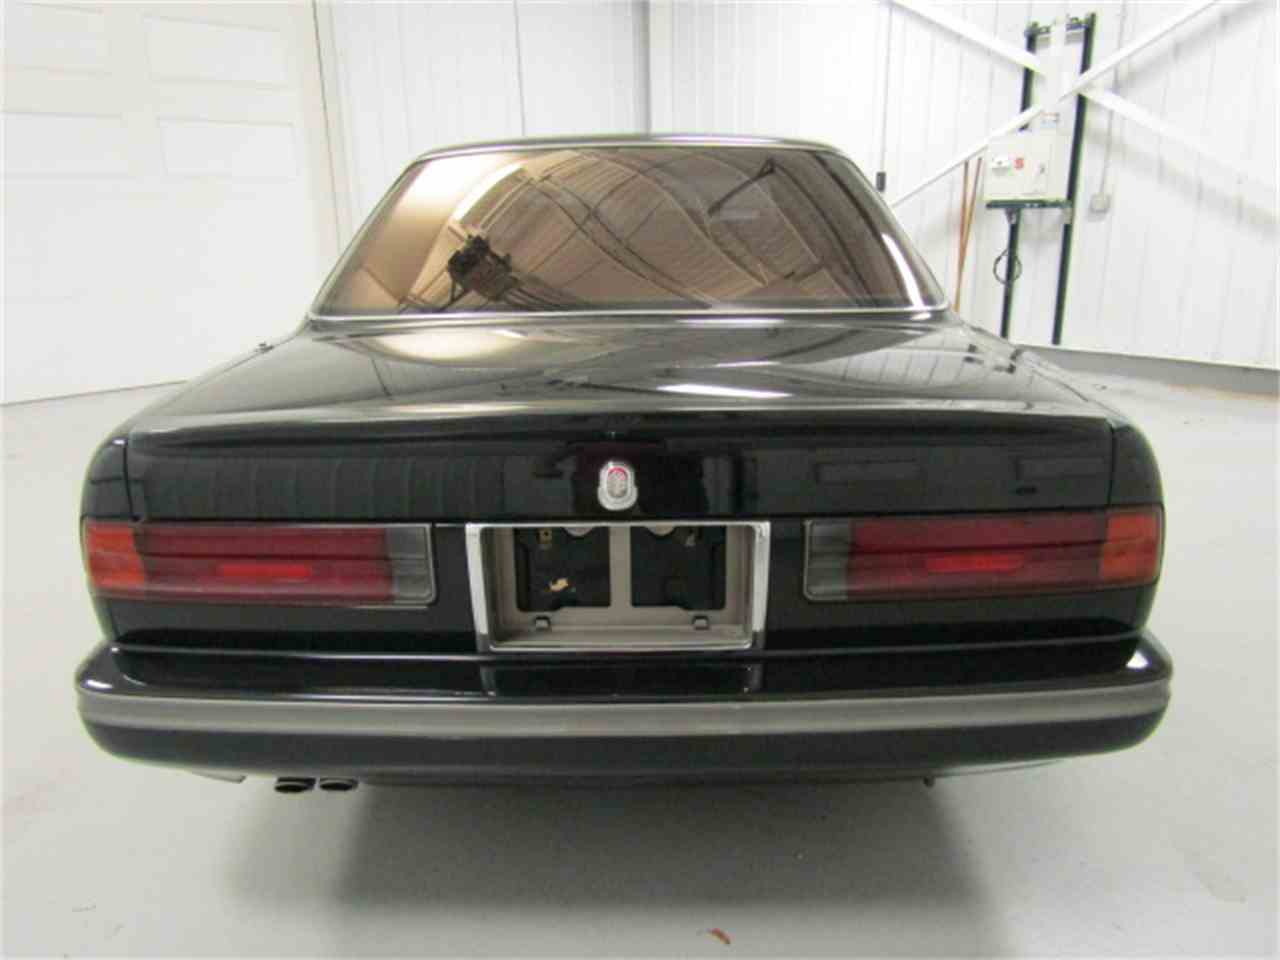 Large Picture of '90 Nissan Cima located in Virginia Offered by Duncan Imports & Classic Cars - JLDM